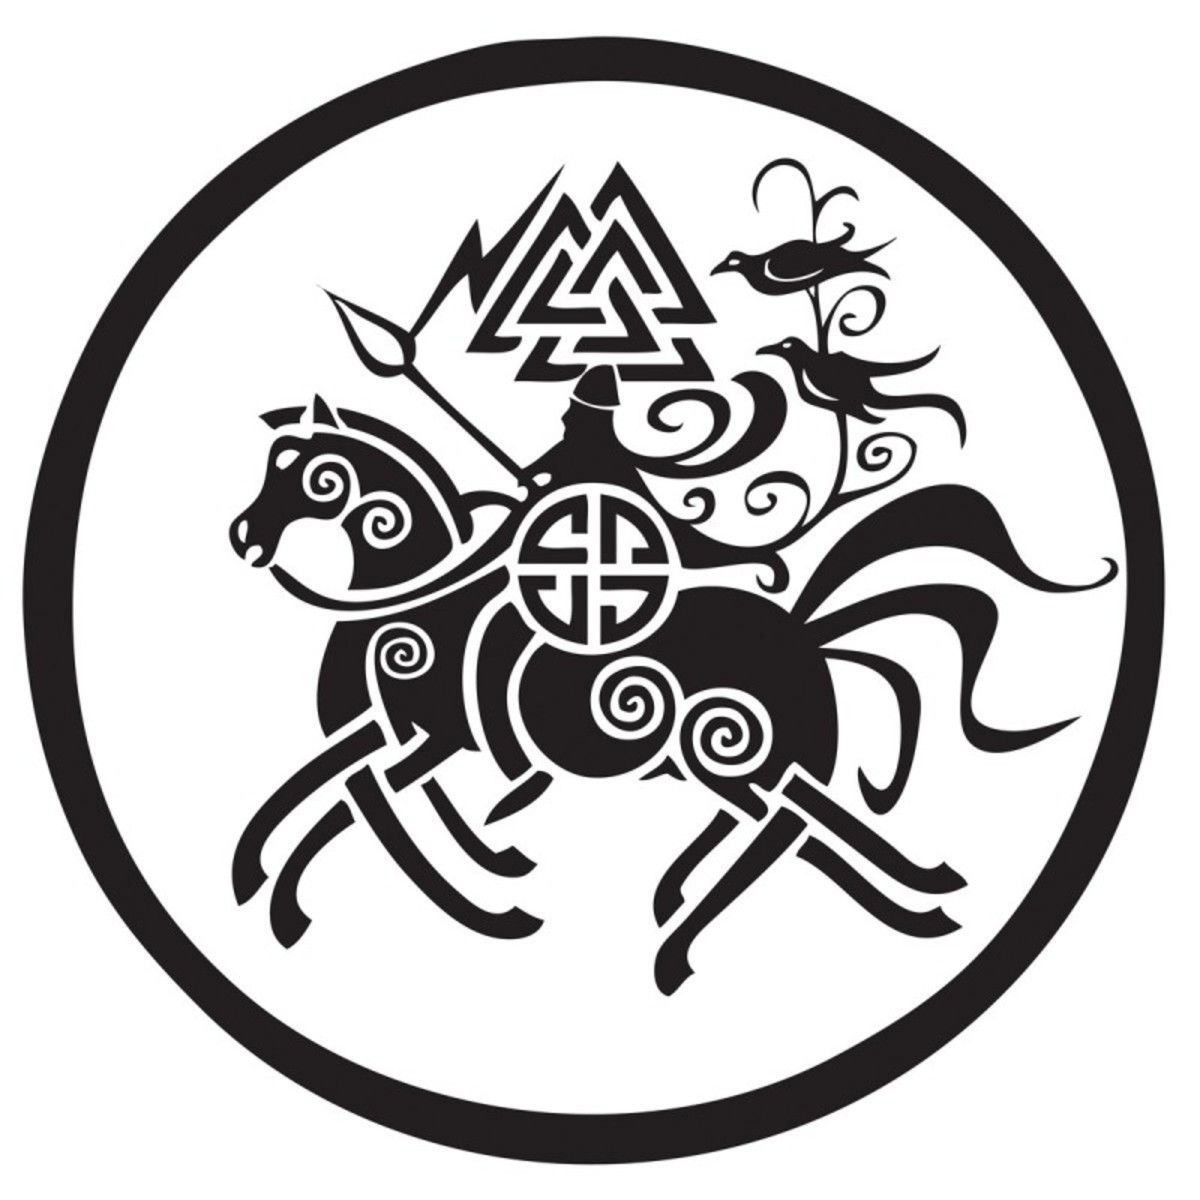 Odin rides Sleipnir, a peace offering from Loki who gave birth to the eight-legged stallion - a car sticker you'll stand out with in the car park!